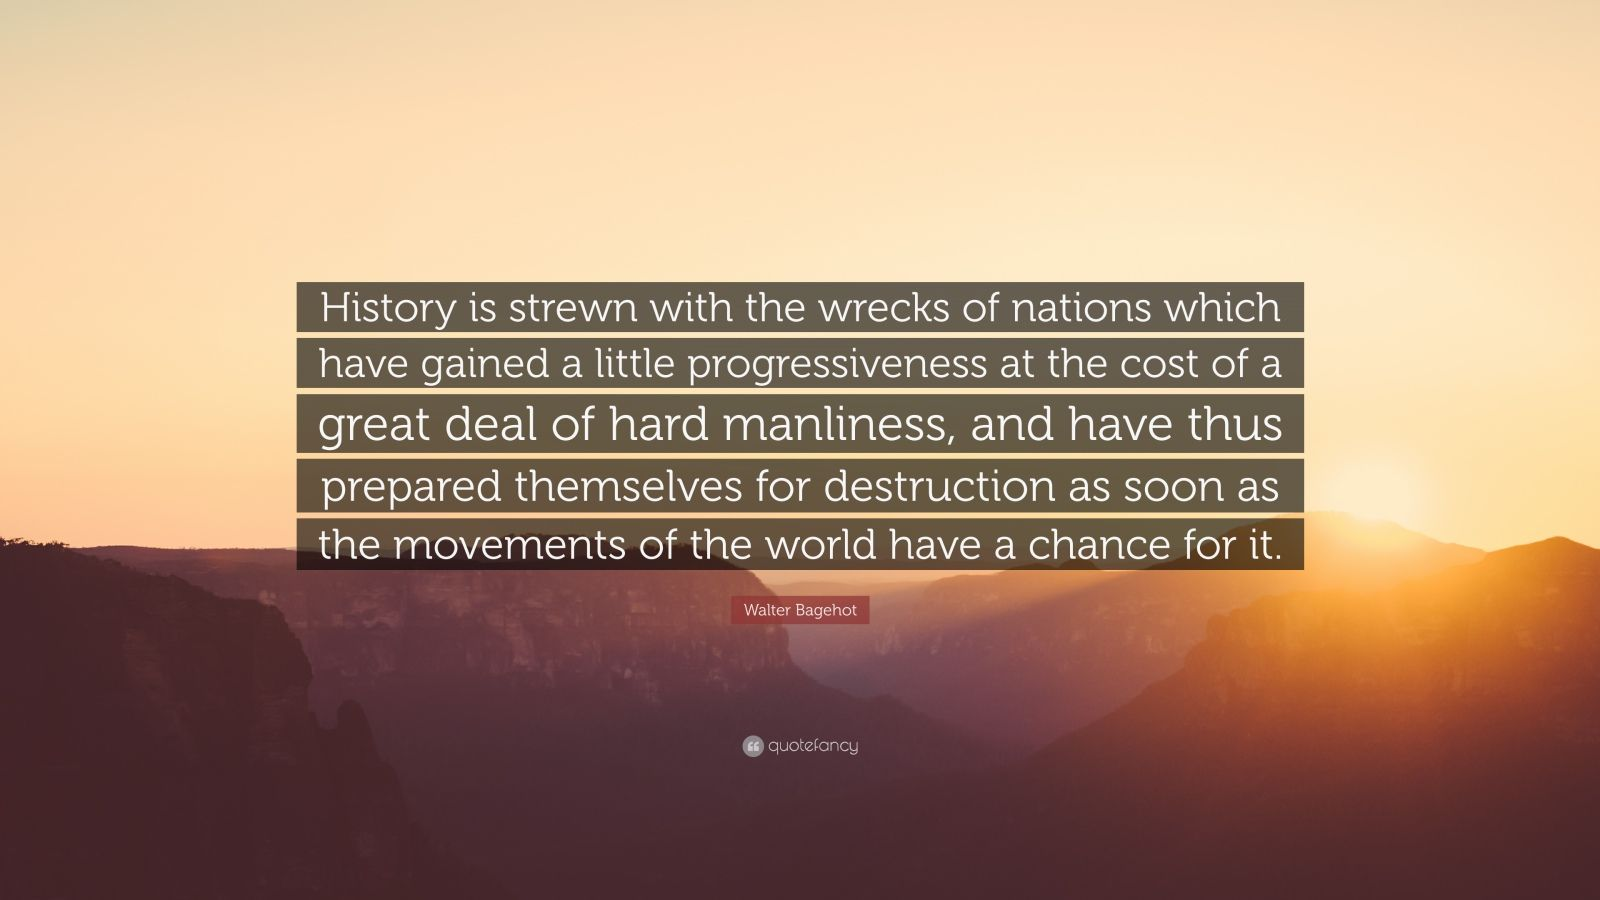 "Walter Bagehot Quote: ""History is strewn with the wrecks of nations which have gained a little progressiveness at the cost of a great deal of hard manliness, and have thus prepared themselves for destruction as soon as the movements of the world have a chance for it."""